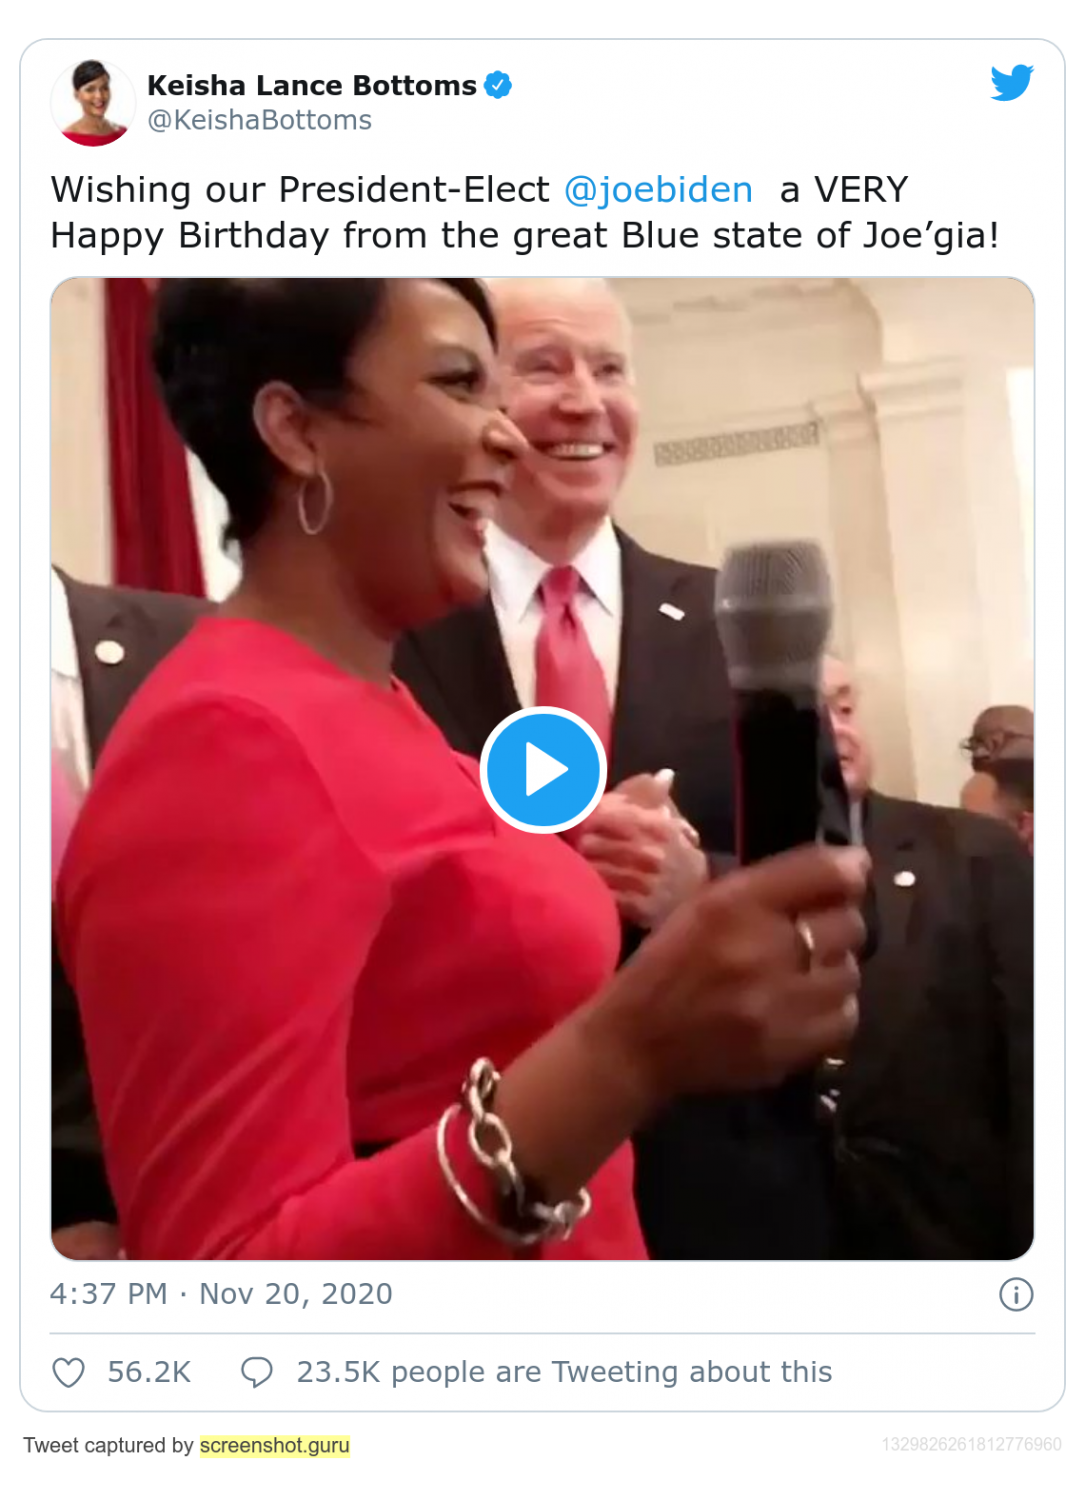 Fact Check: Did Joe Biden Really Come to a Maskless Birthday Celebration in 2020?